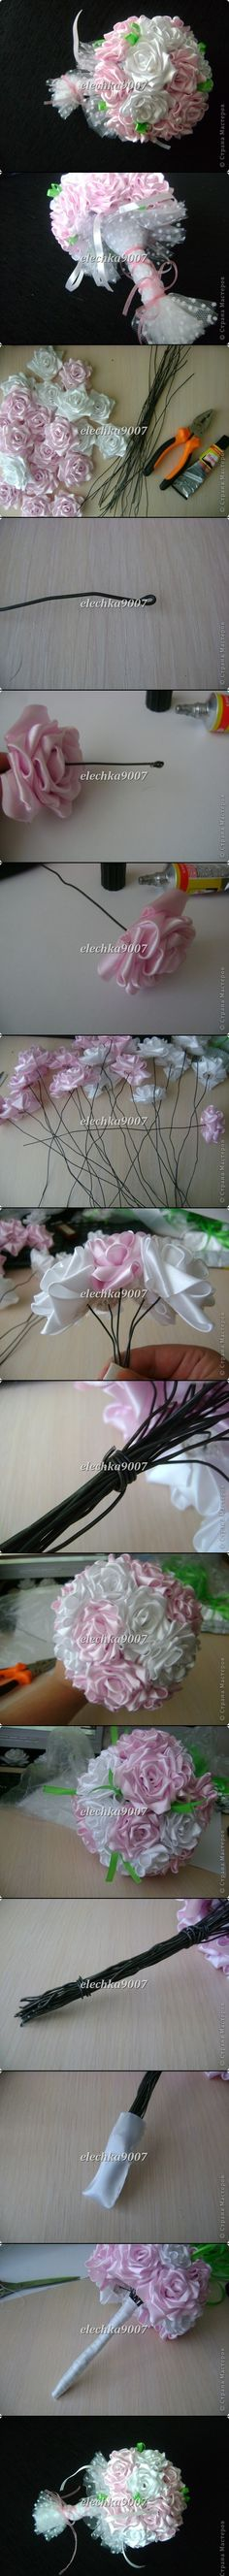 How to make a ribbon bouquet Ribbon Art, Diy Ribbon, Fabric Ribbon, Ribbon Crafts, Flower Crafts, Fabric Bouquet, Ribbon Bouquet, Ribbon Flower, Rose Bouquet